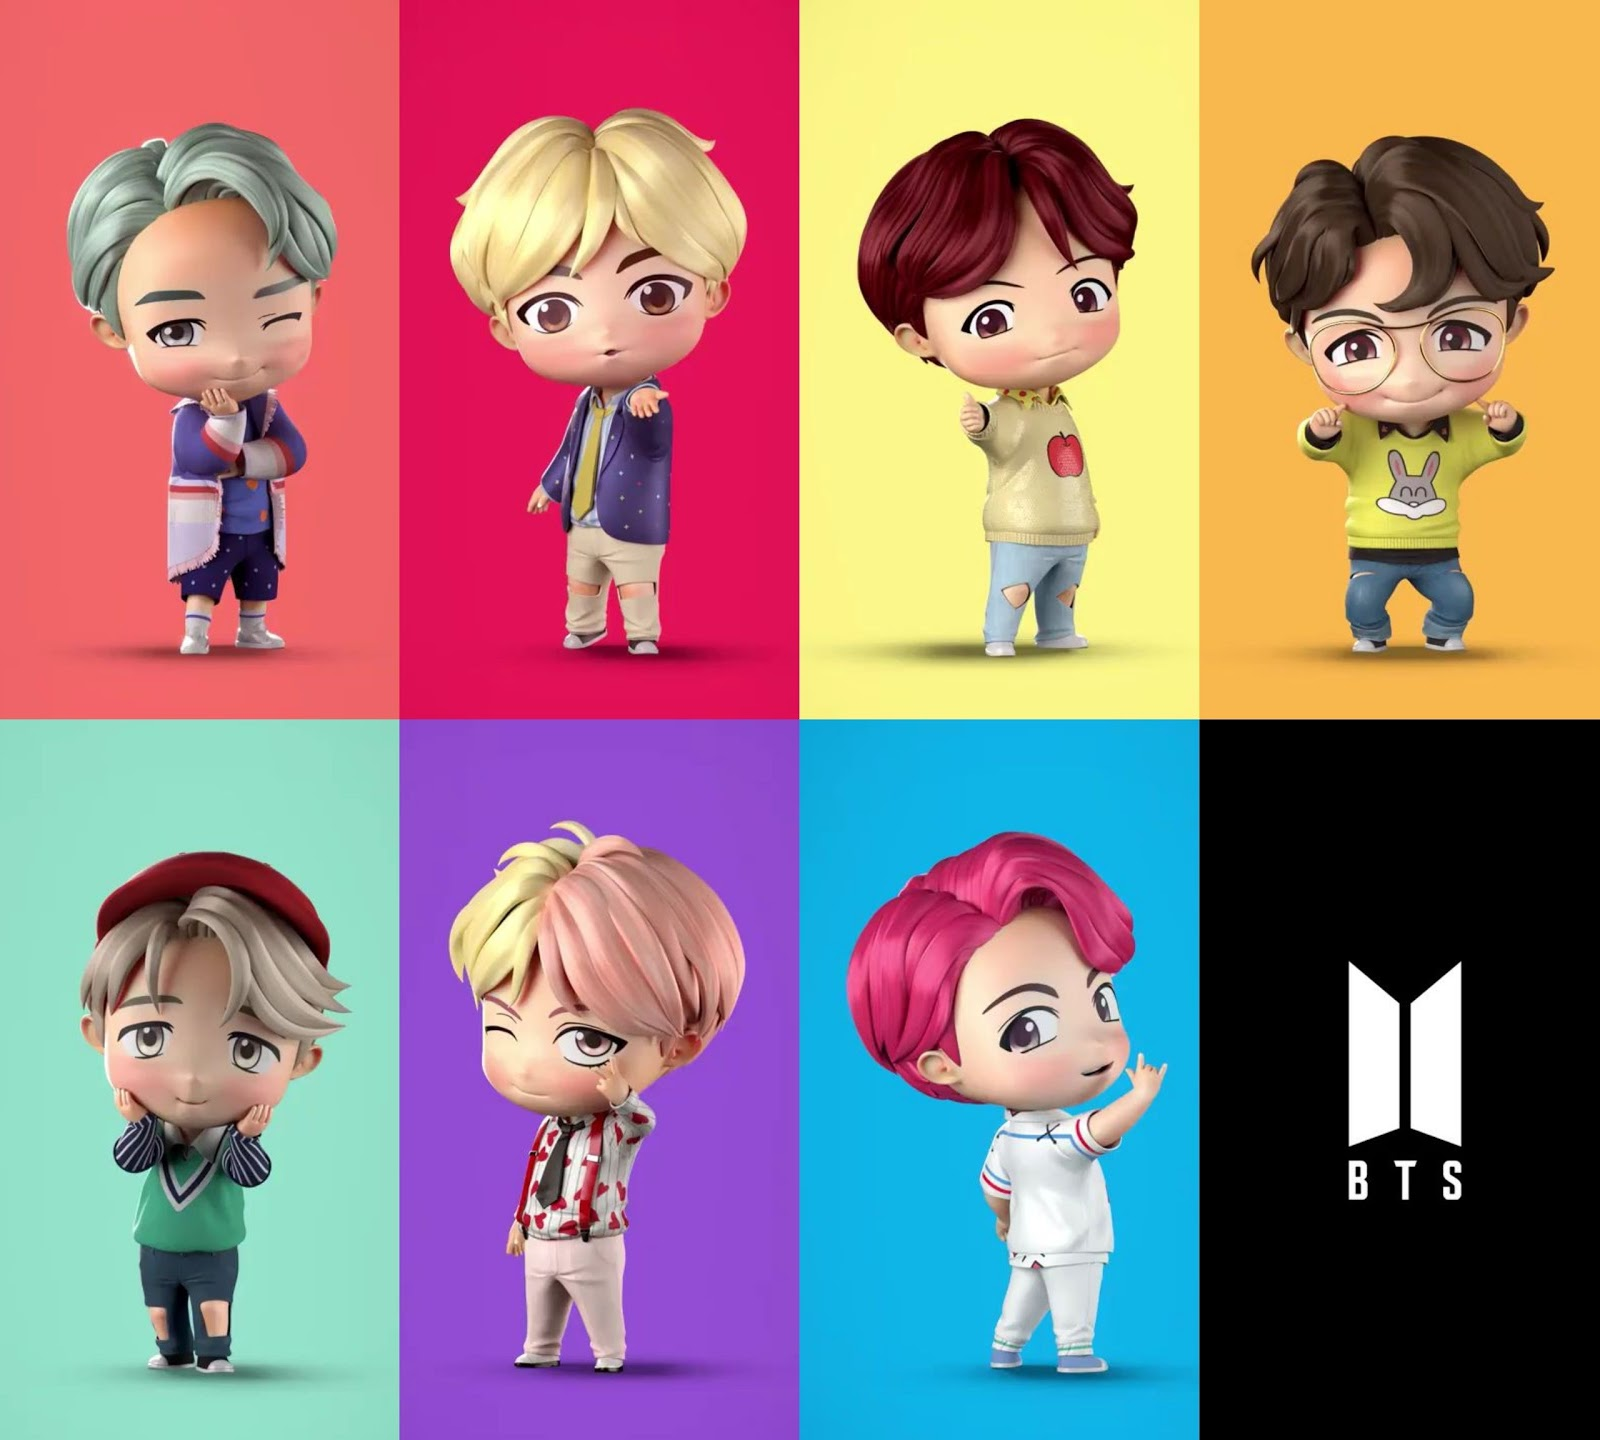 house of bts